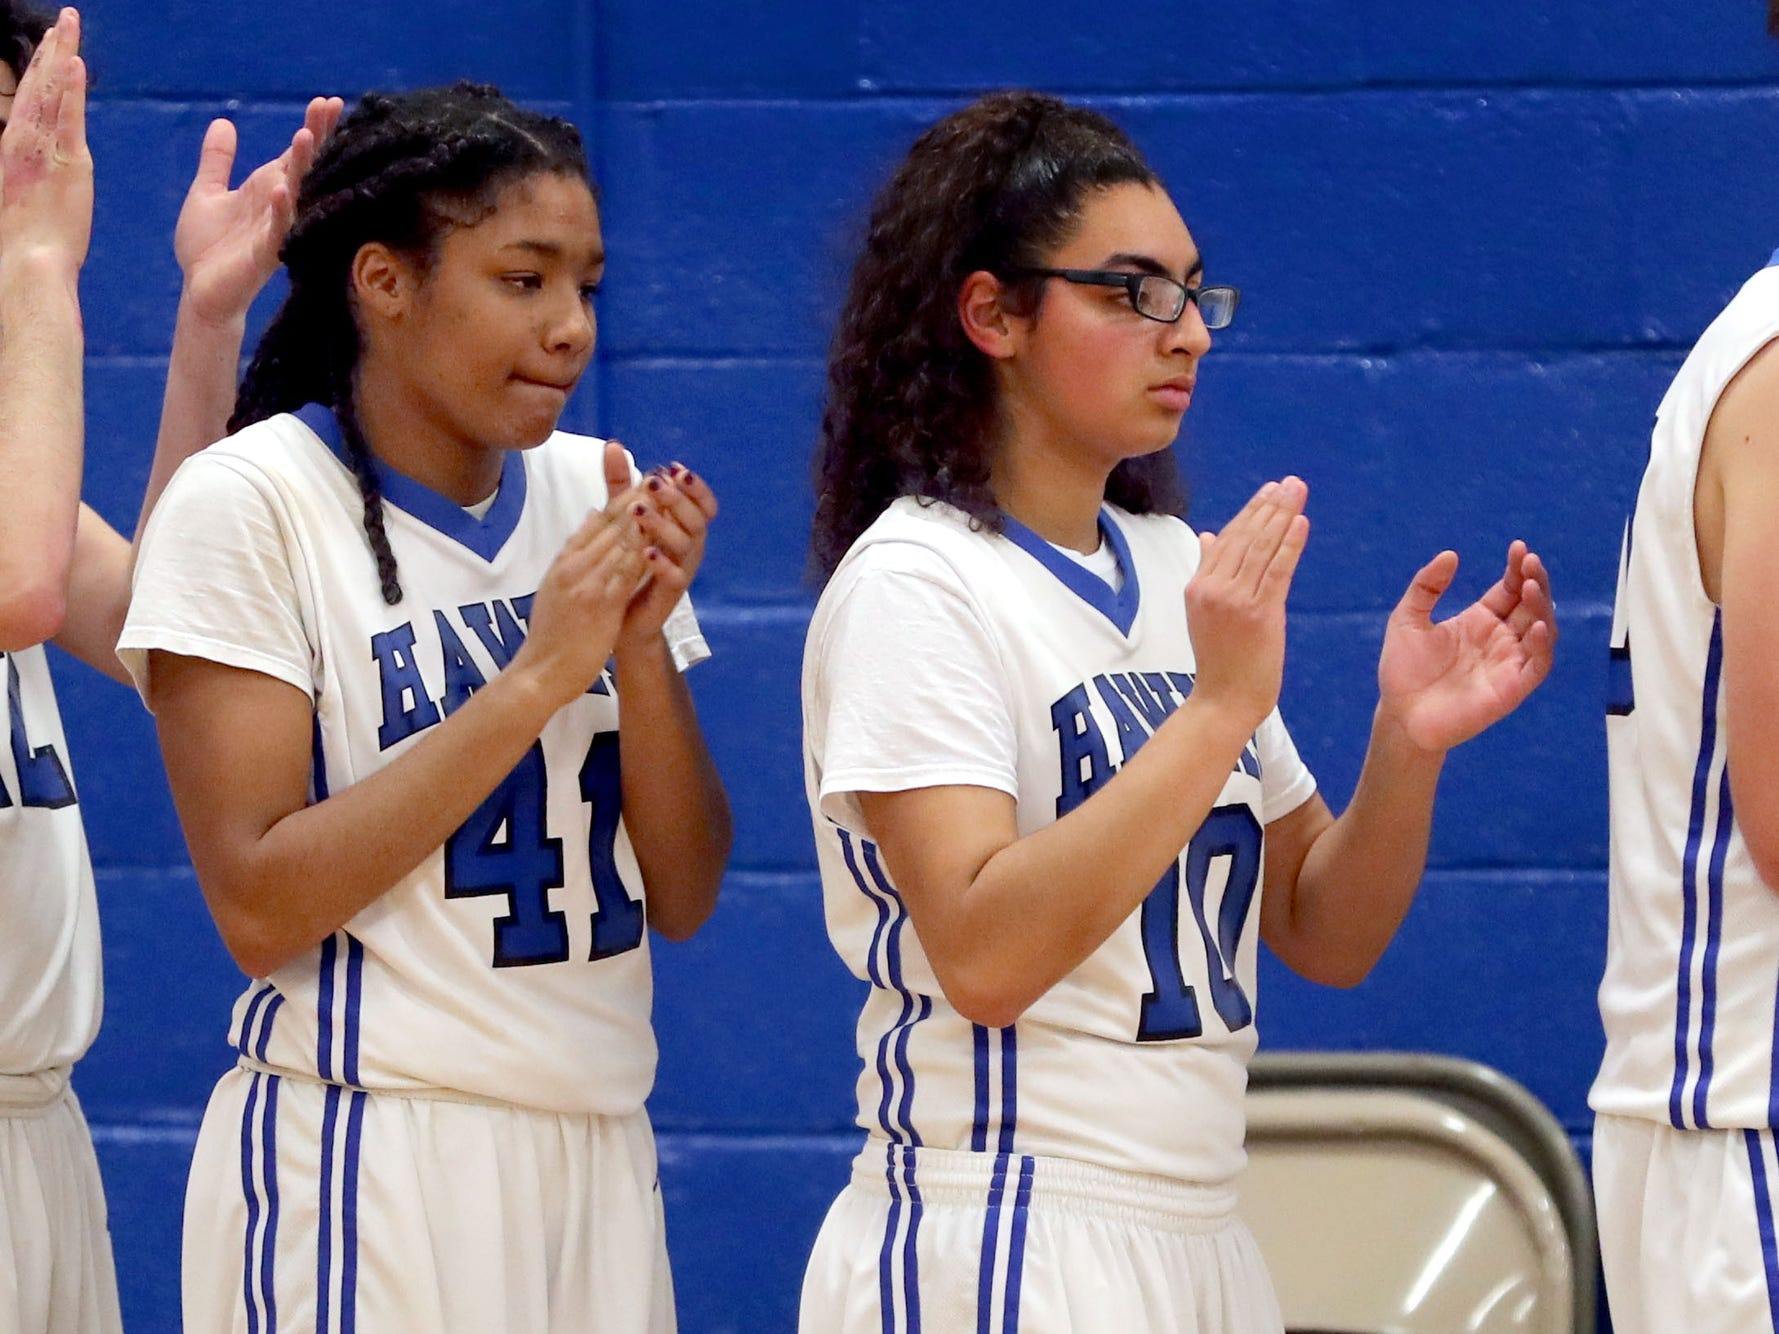 HollowayÕs Shelby Utley (41) and HollowayÕs Aaliyah Morales (10) clap after the anthem before the game against Central at Holloway on Thursday, Dec. 6, 2018.